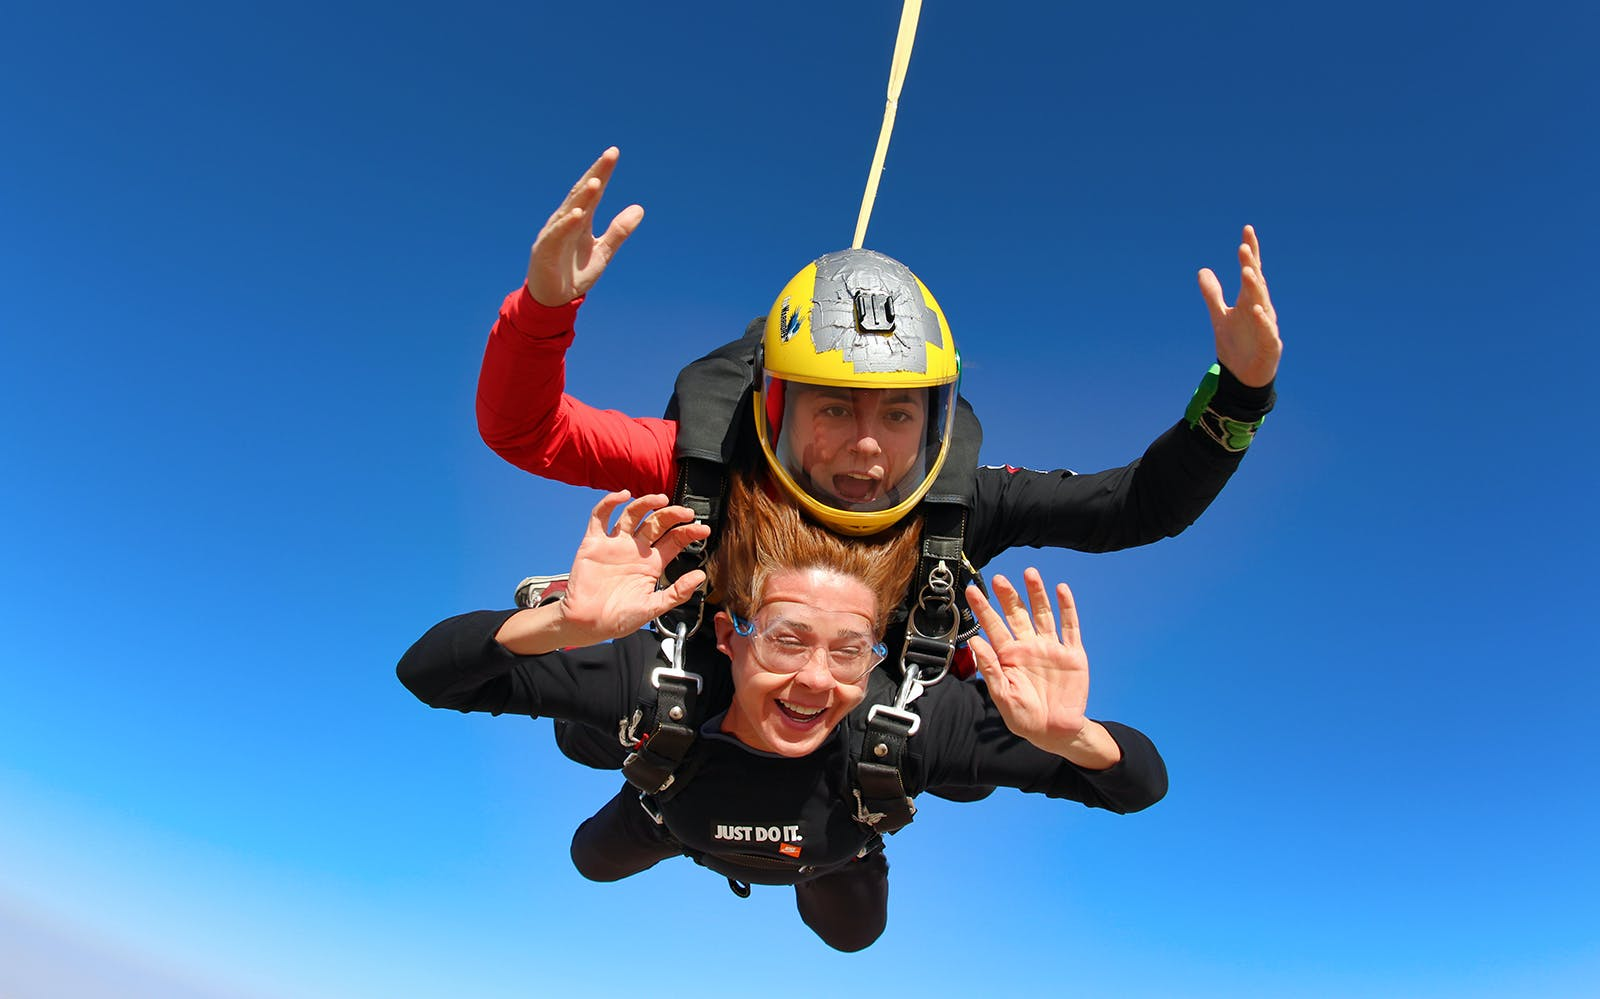 tandem skydiving at desert campus drop zone + free burj khalifa or desert safari-2